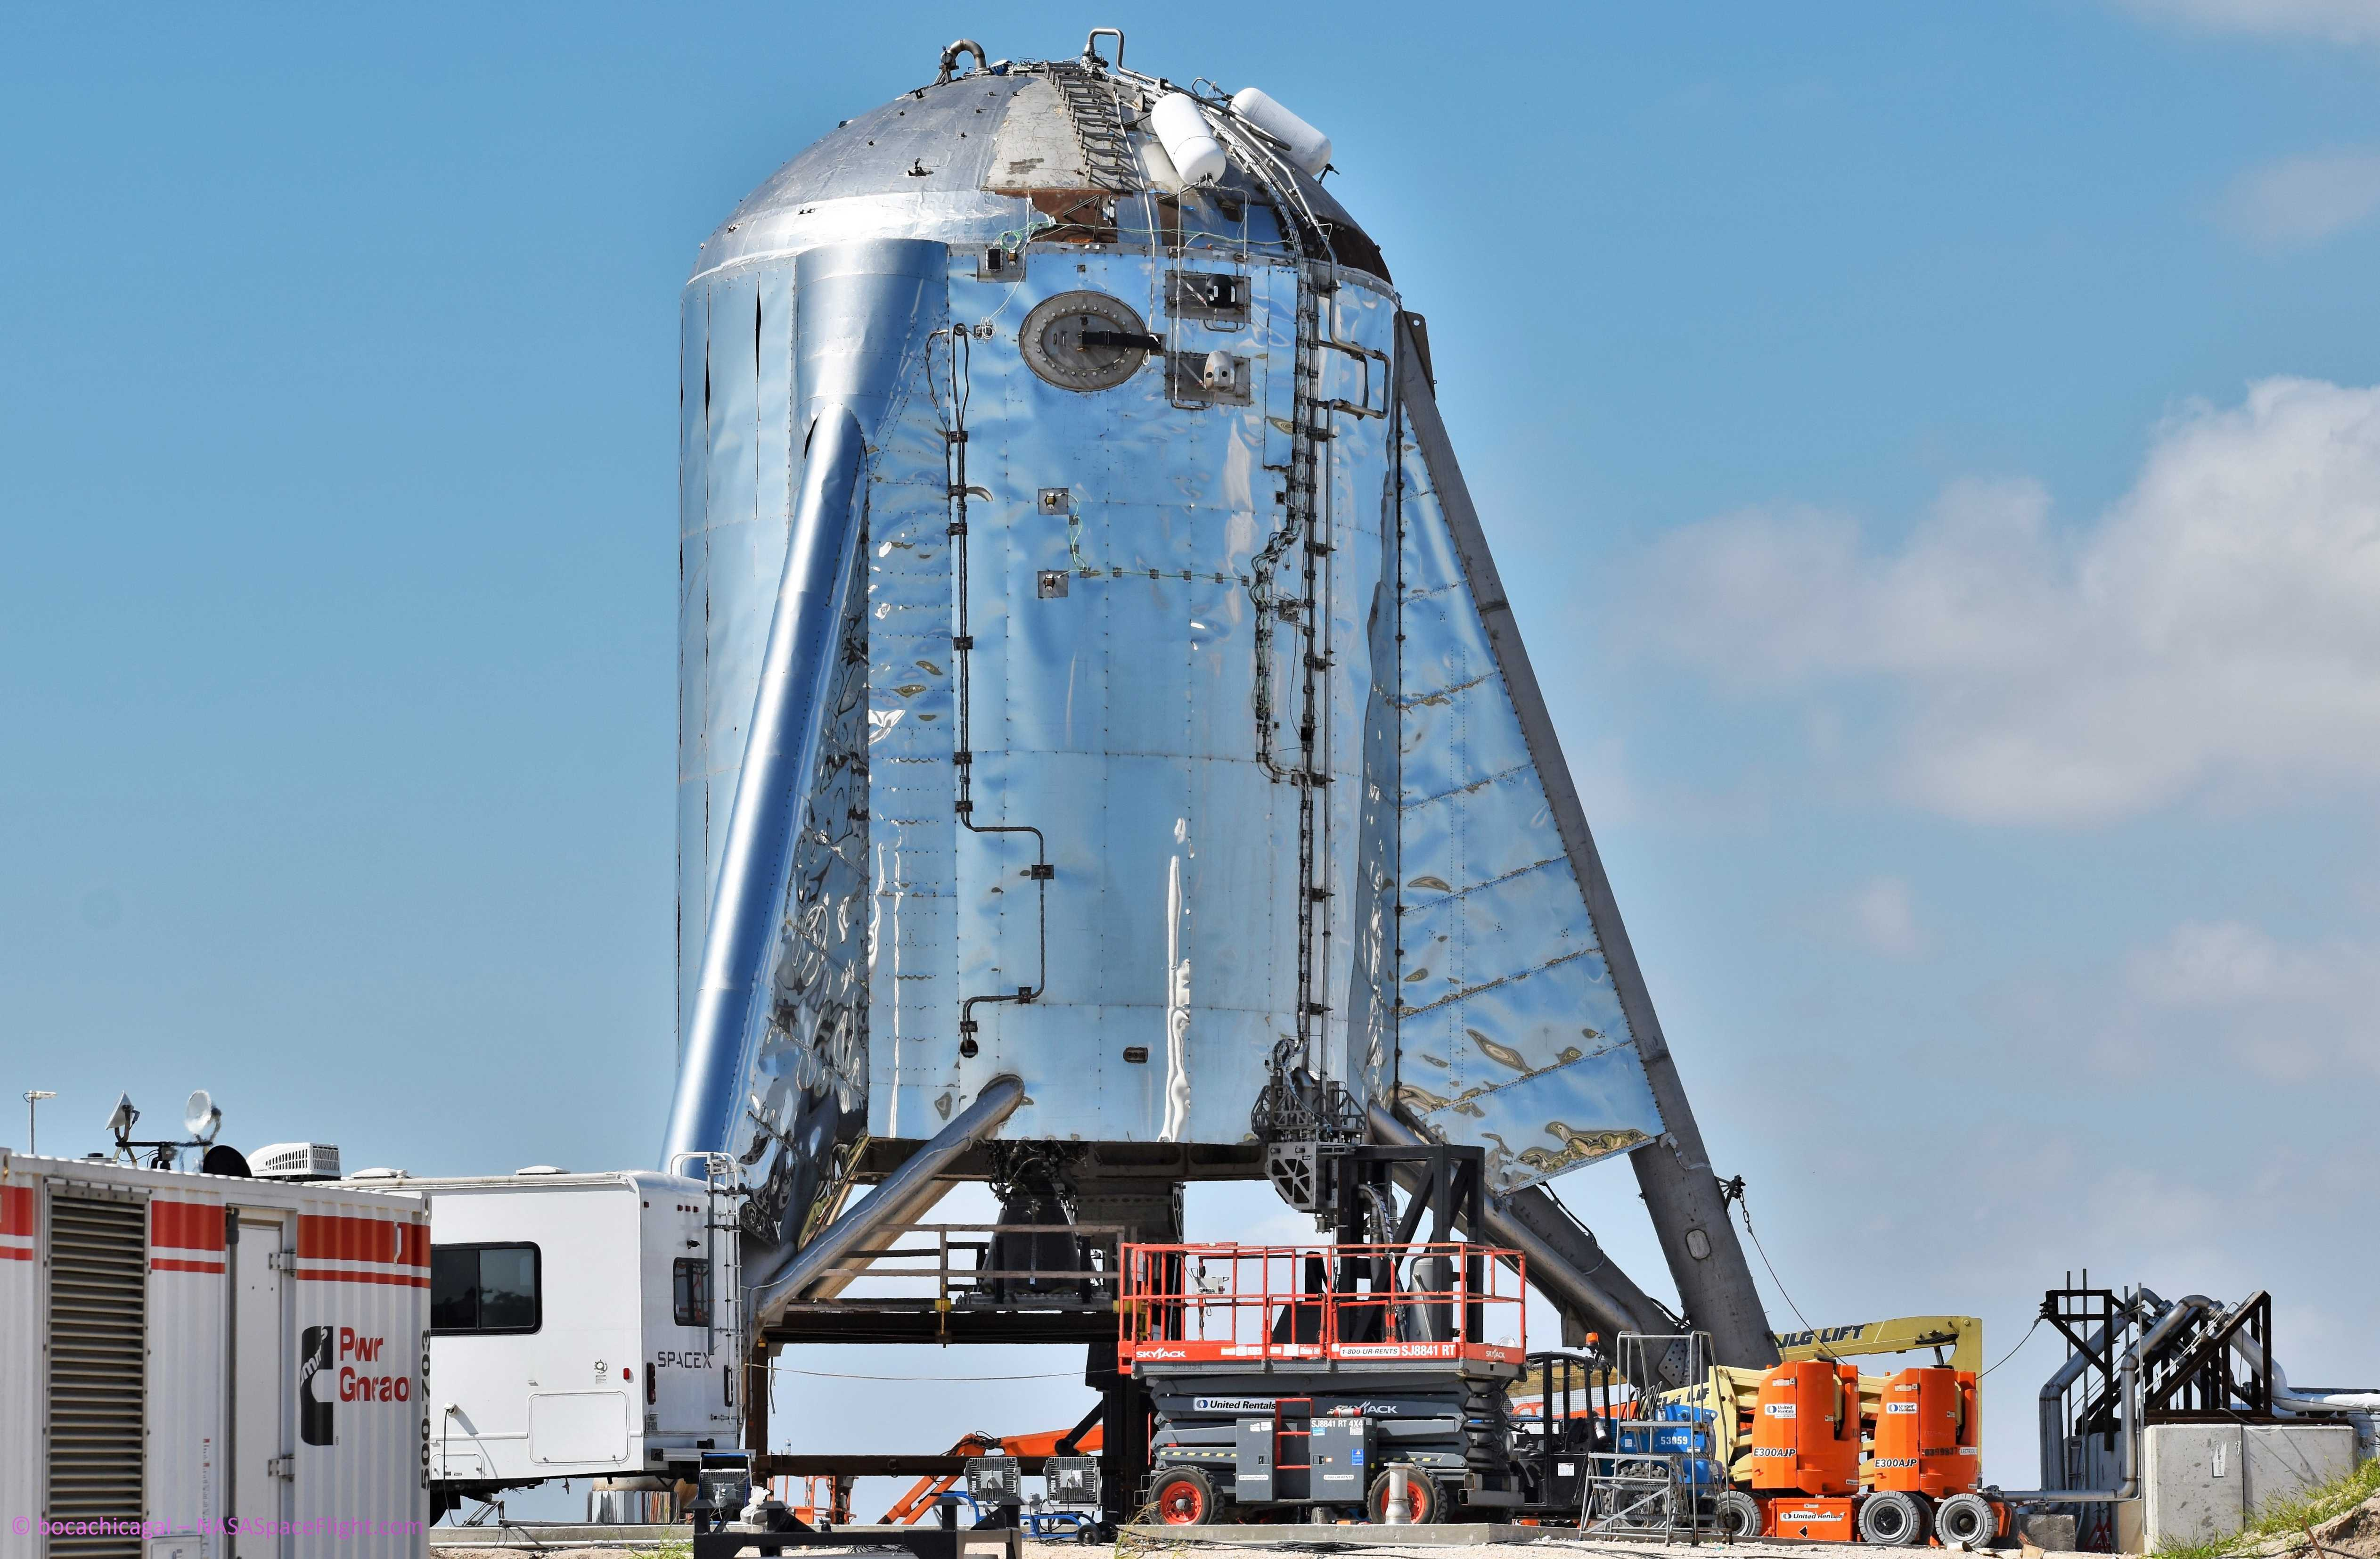 SpaceX ships Raptor to Texas for first Starhopper hover tests after